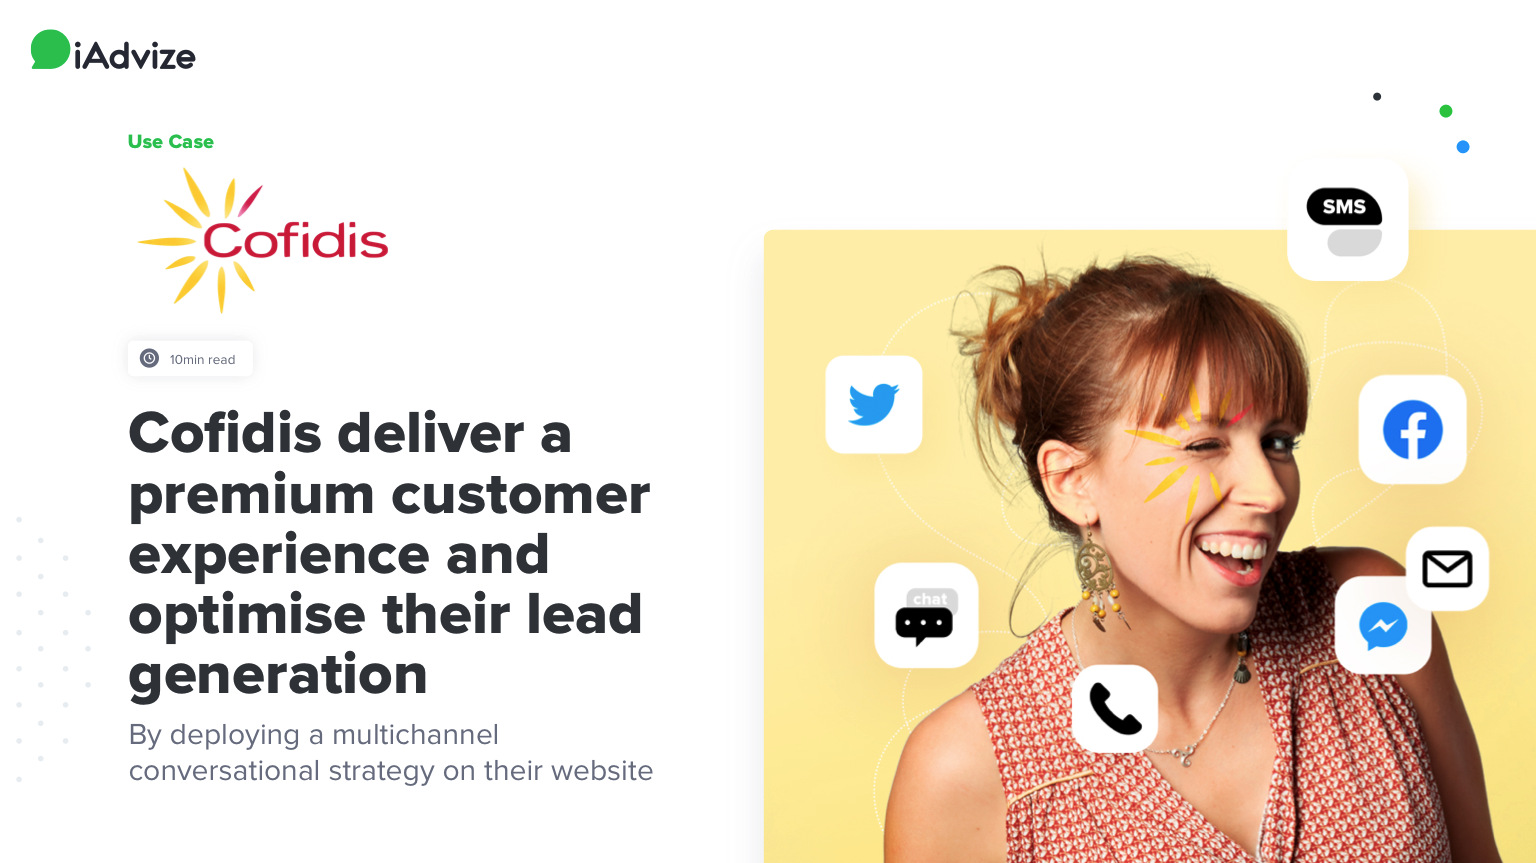 Cofidis deliver a premium customer experience and optimise their lead generation by deploying a multichannel conversational strategy on their website